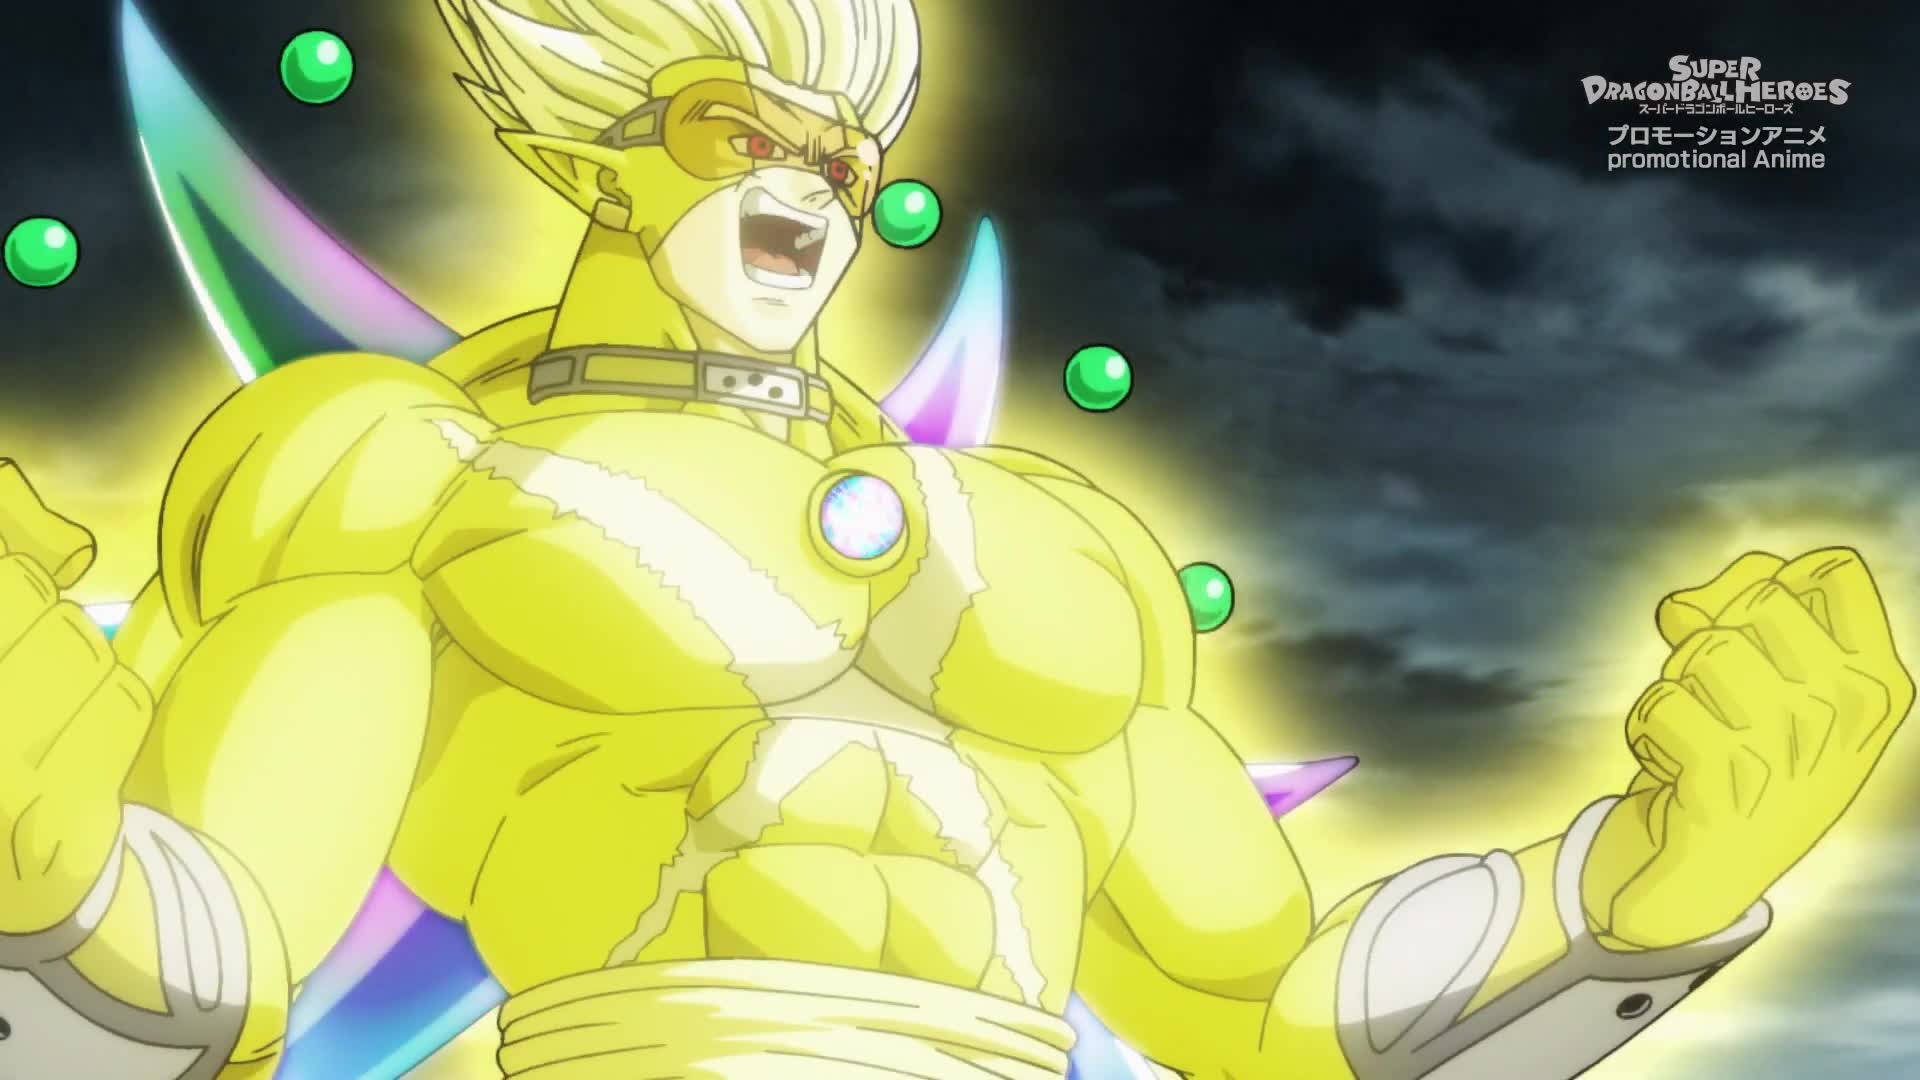 y2mate.com - super_dragon_ball_heroes_episode_17_gogeta_returns_iws-xMZVPRw_1080p_4683.jpg